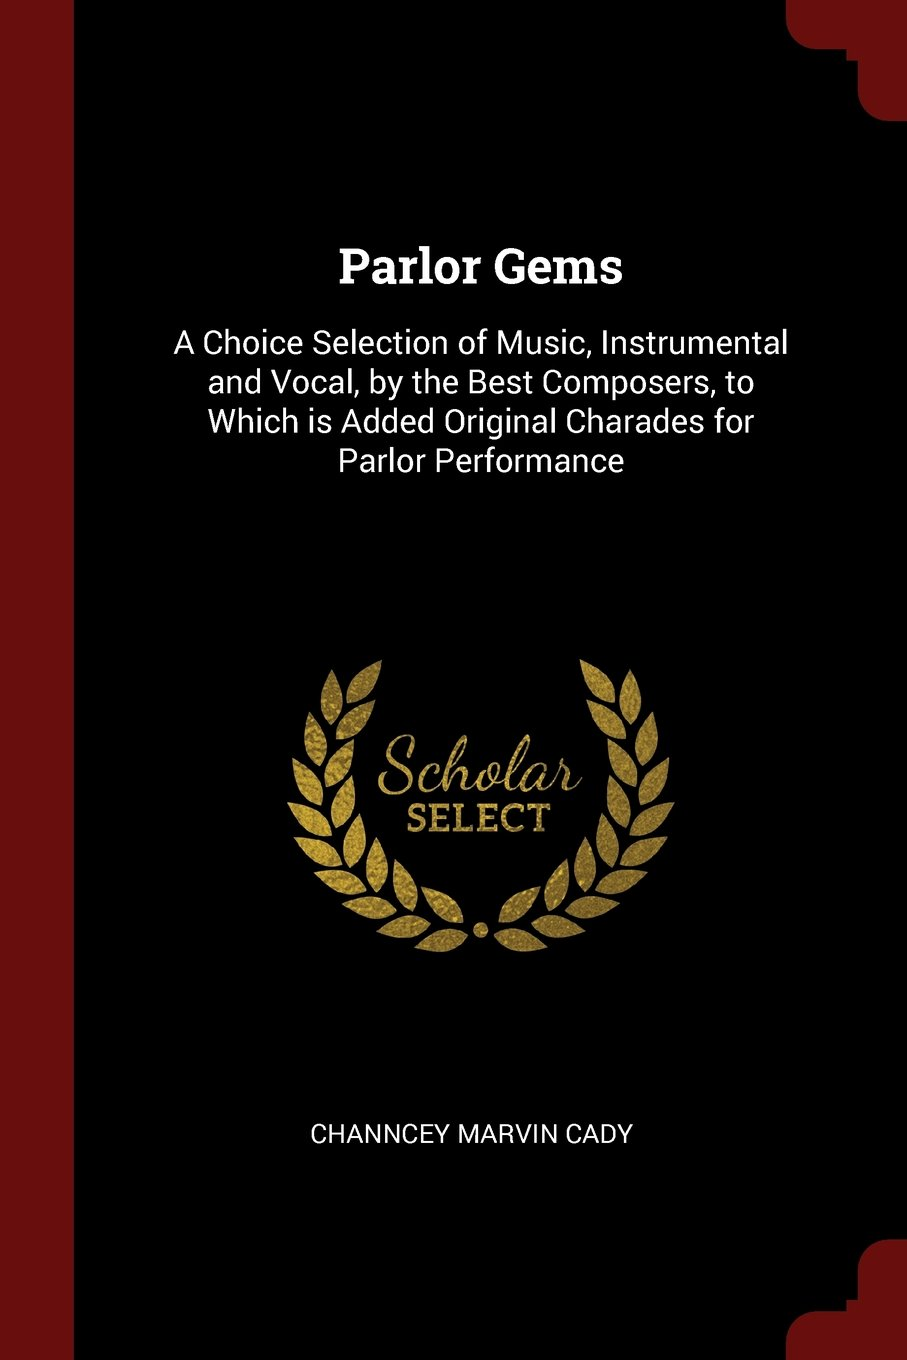 Read Online Parlor Gems: A Choice Selection of Music, Instrumental and Vocal, by the Best Composers, to Which is Added Original Charades for Parlor Performance PDF